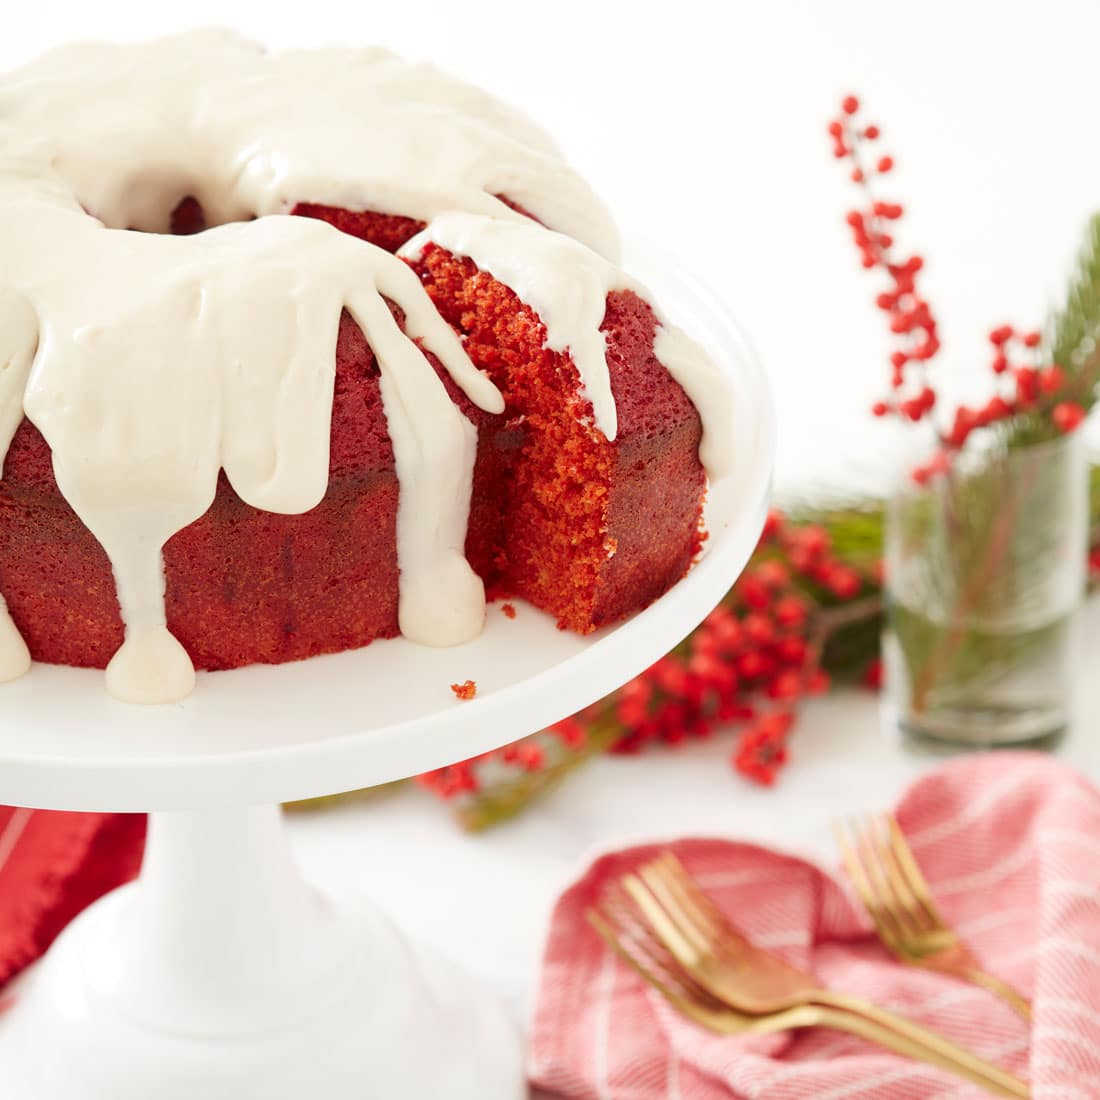 Side image of Miss Jones Baking Co's Red Velvet Bundt Cake and Cream Cheese Glaze with a slice being cut